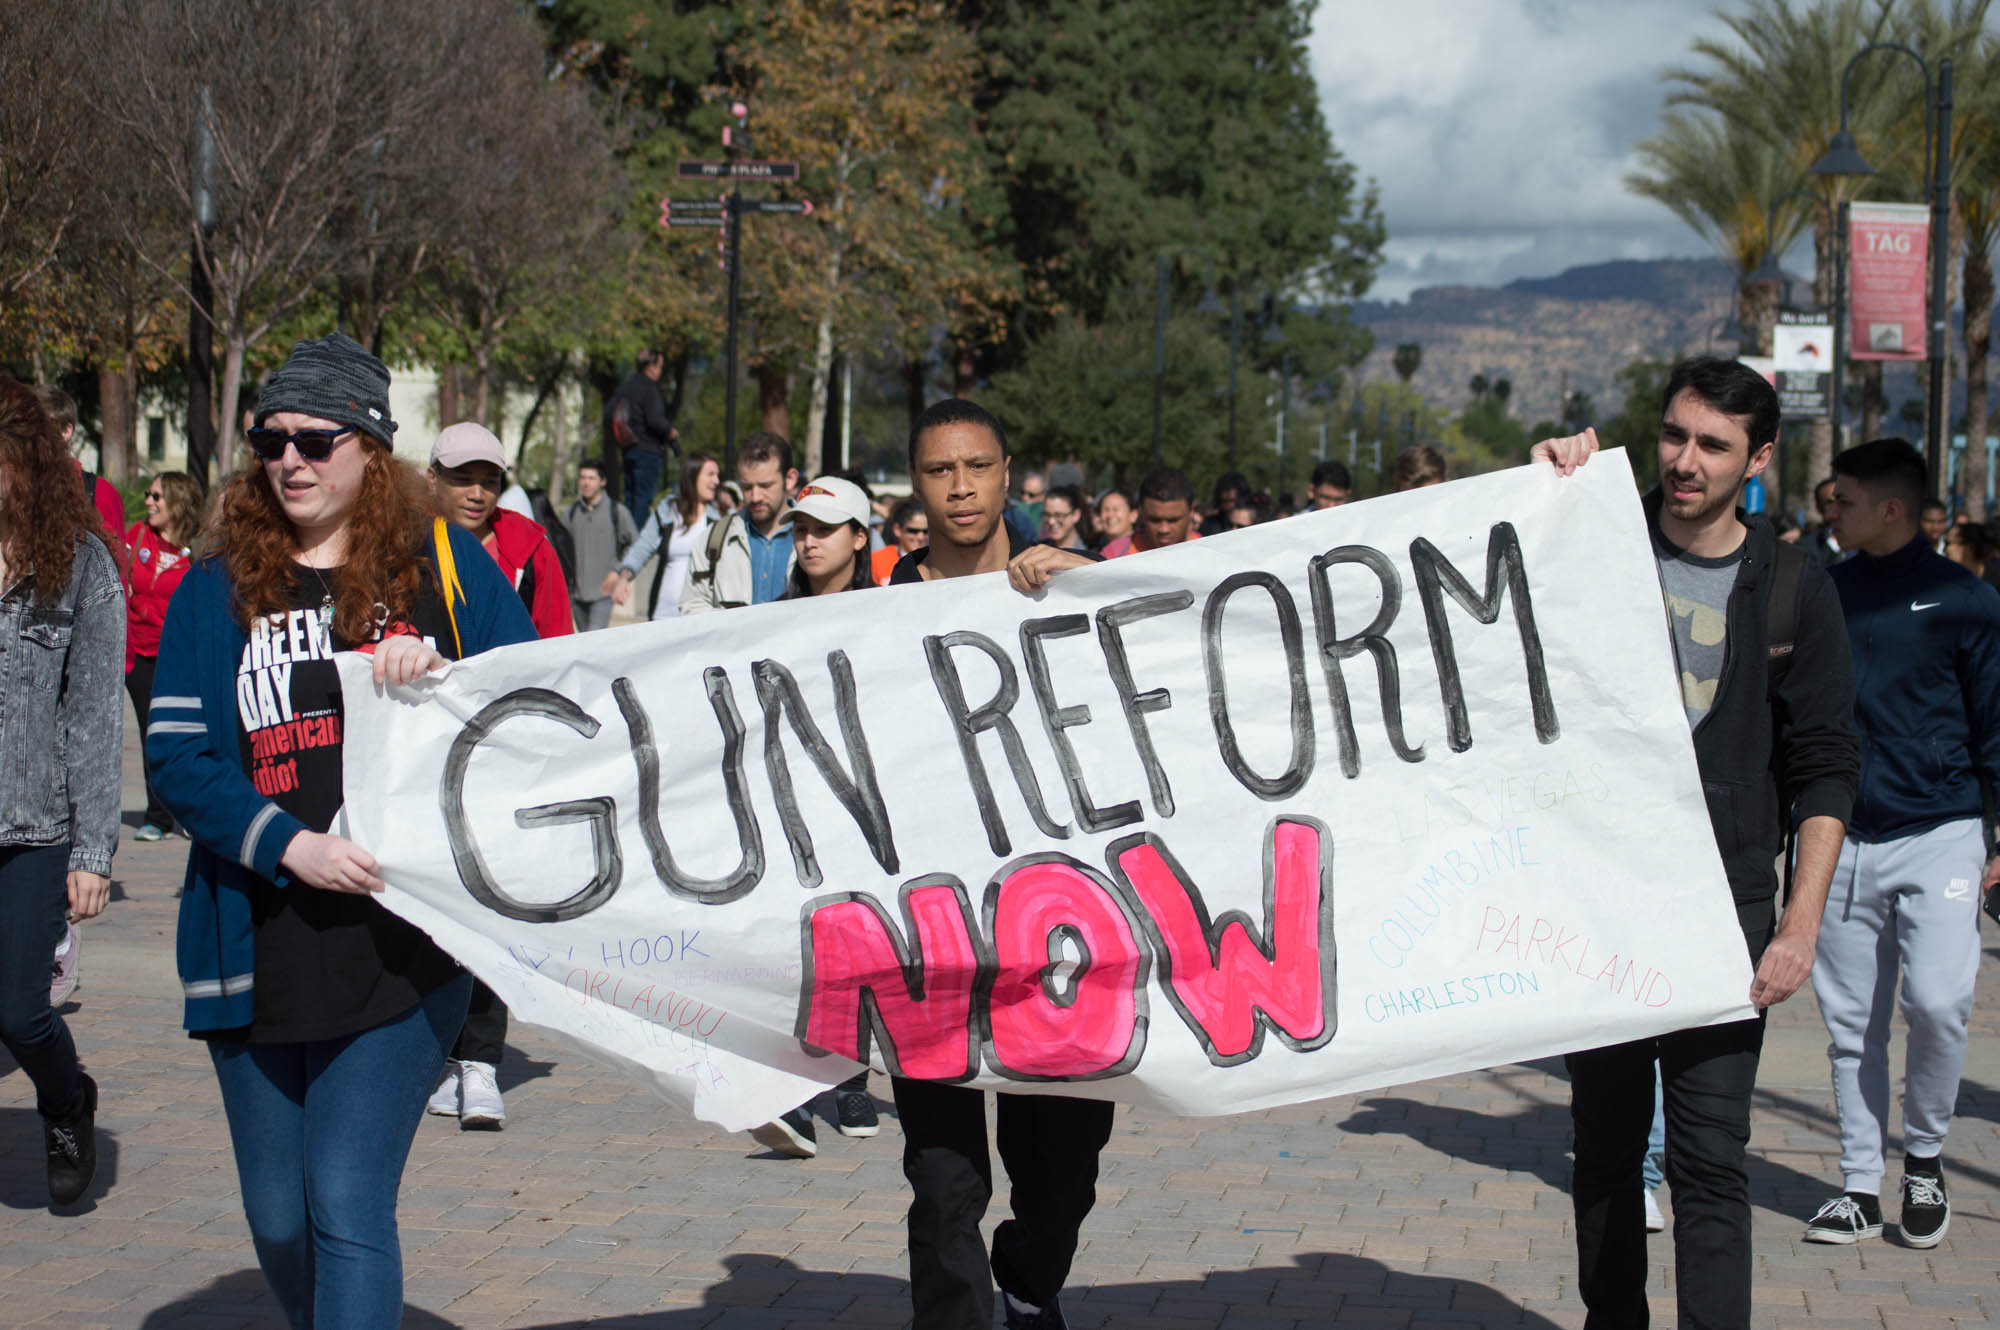 National protest spurs local student action